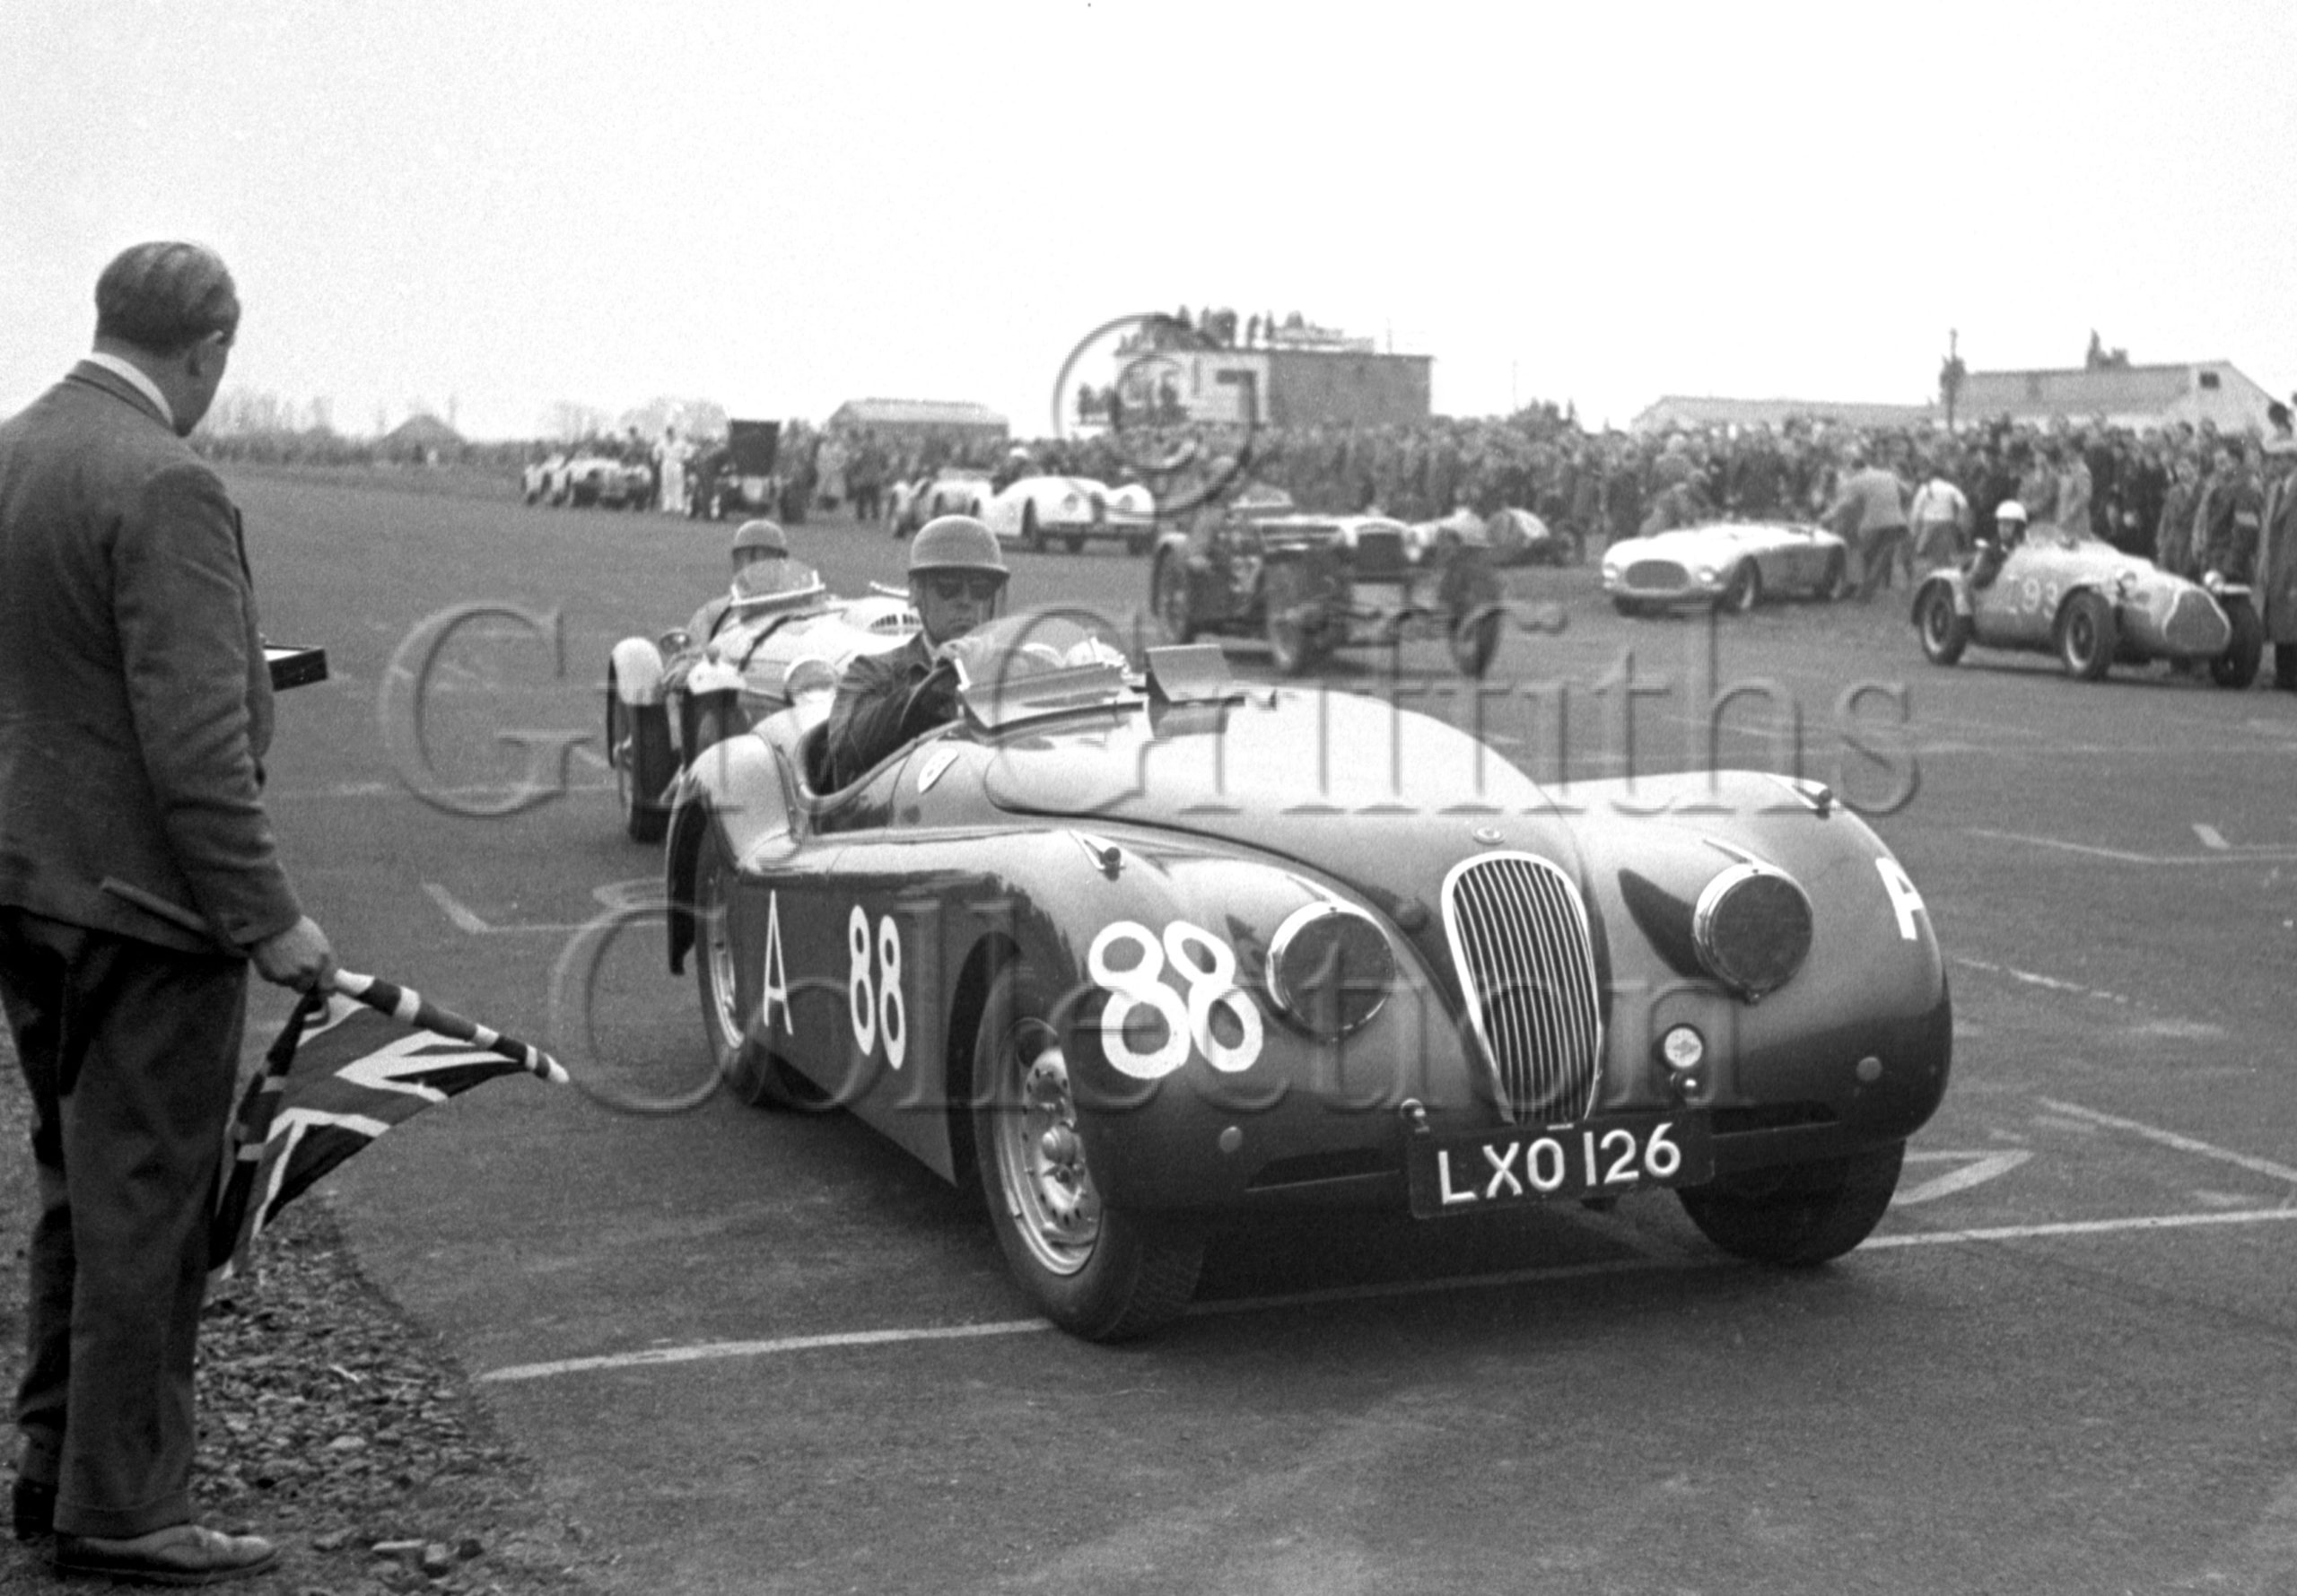 52-481—J-L-M-Scott-Douglas–Jaguar-XK-120-LXO-126–Castle-Combe–12-04-1952.jpg.jpg - Guy Griffiths Collection